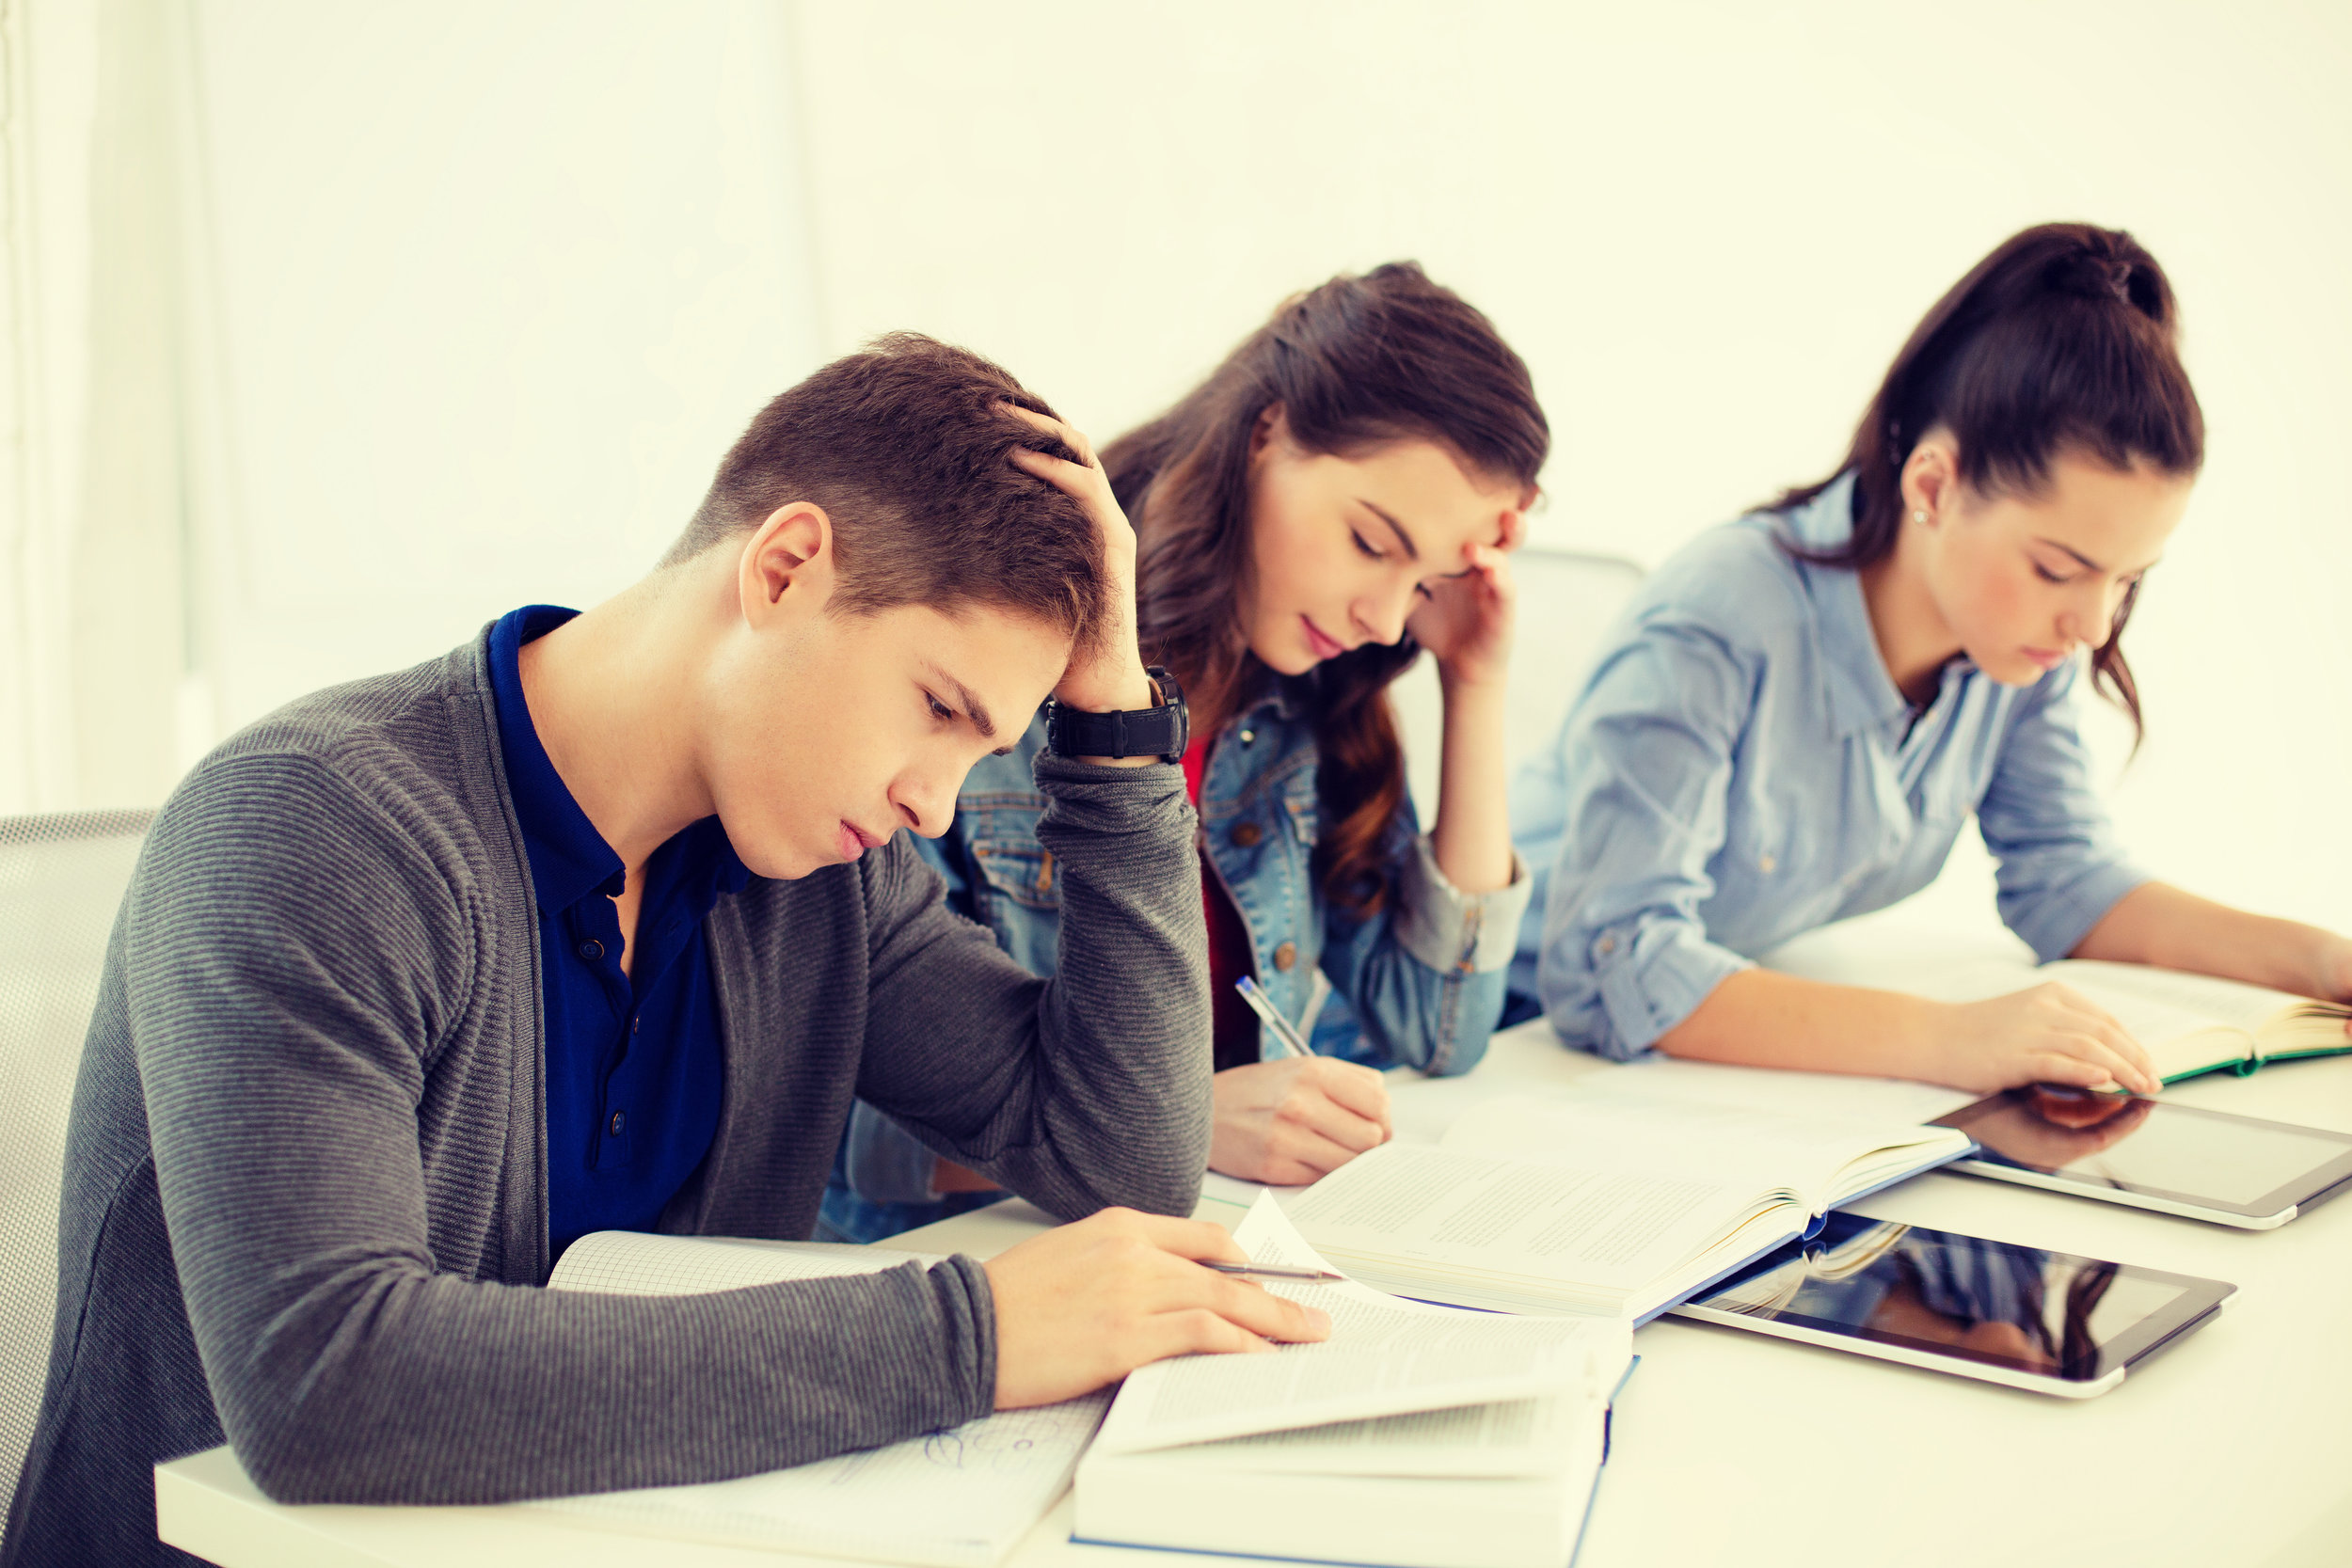 Misunderstanding of Learning Differences lead to students NOT graduating high school